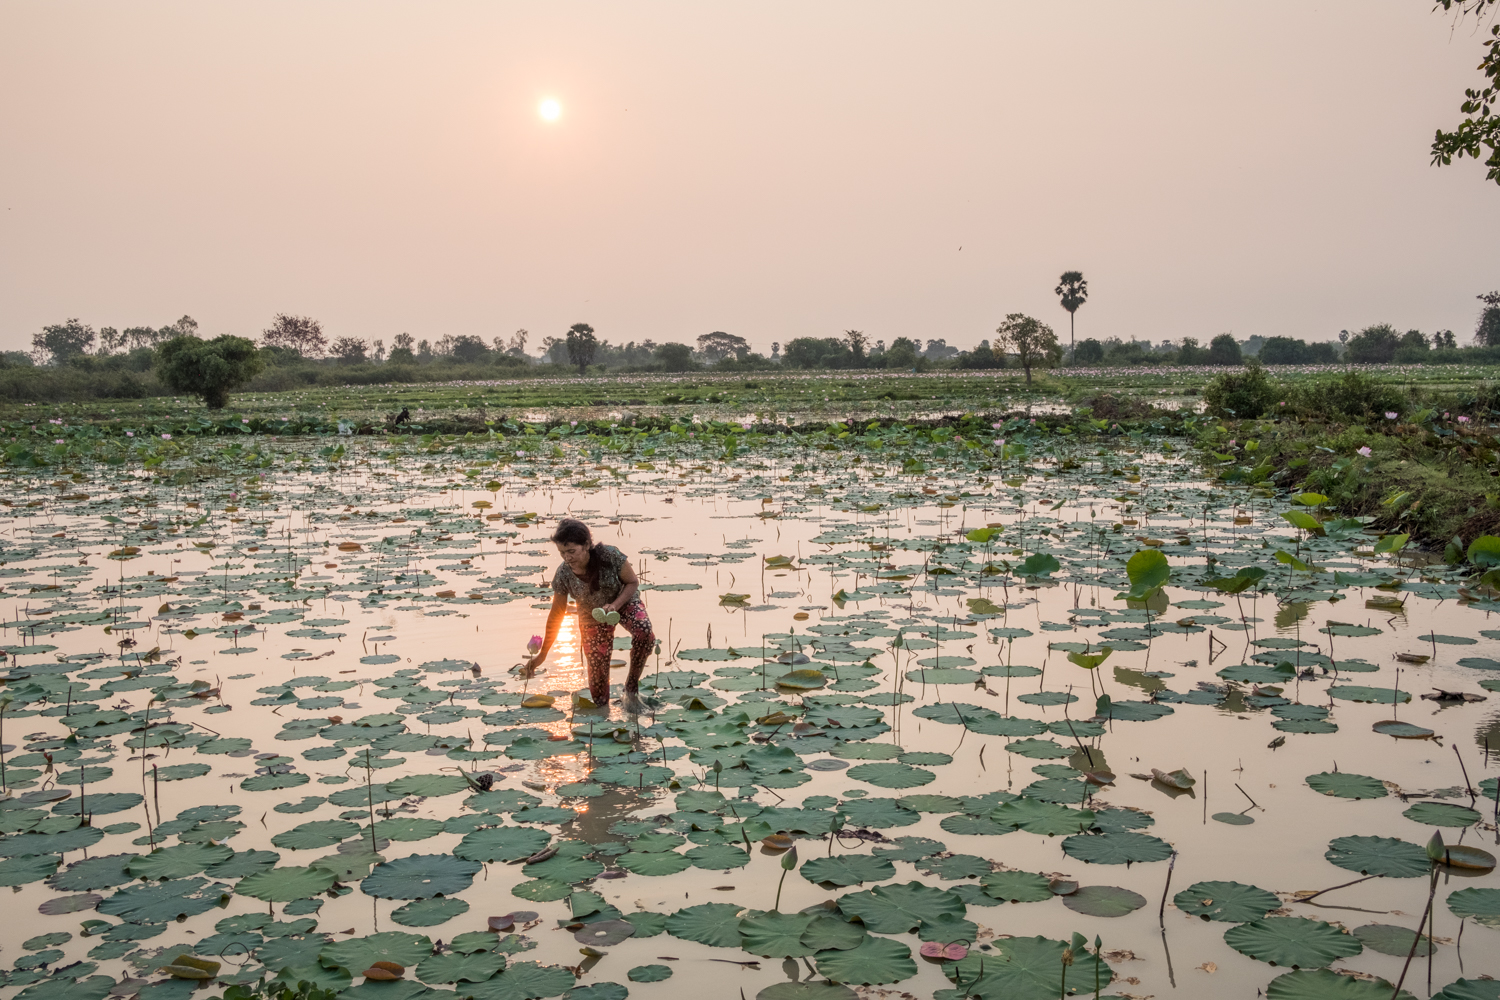 In Kampong Tralach, Cambodia, a small district along the Tonle Sap River, a woman wades through a field picking lotus flowers.